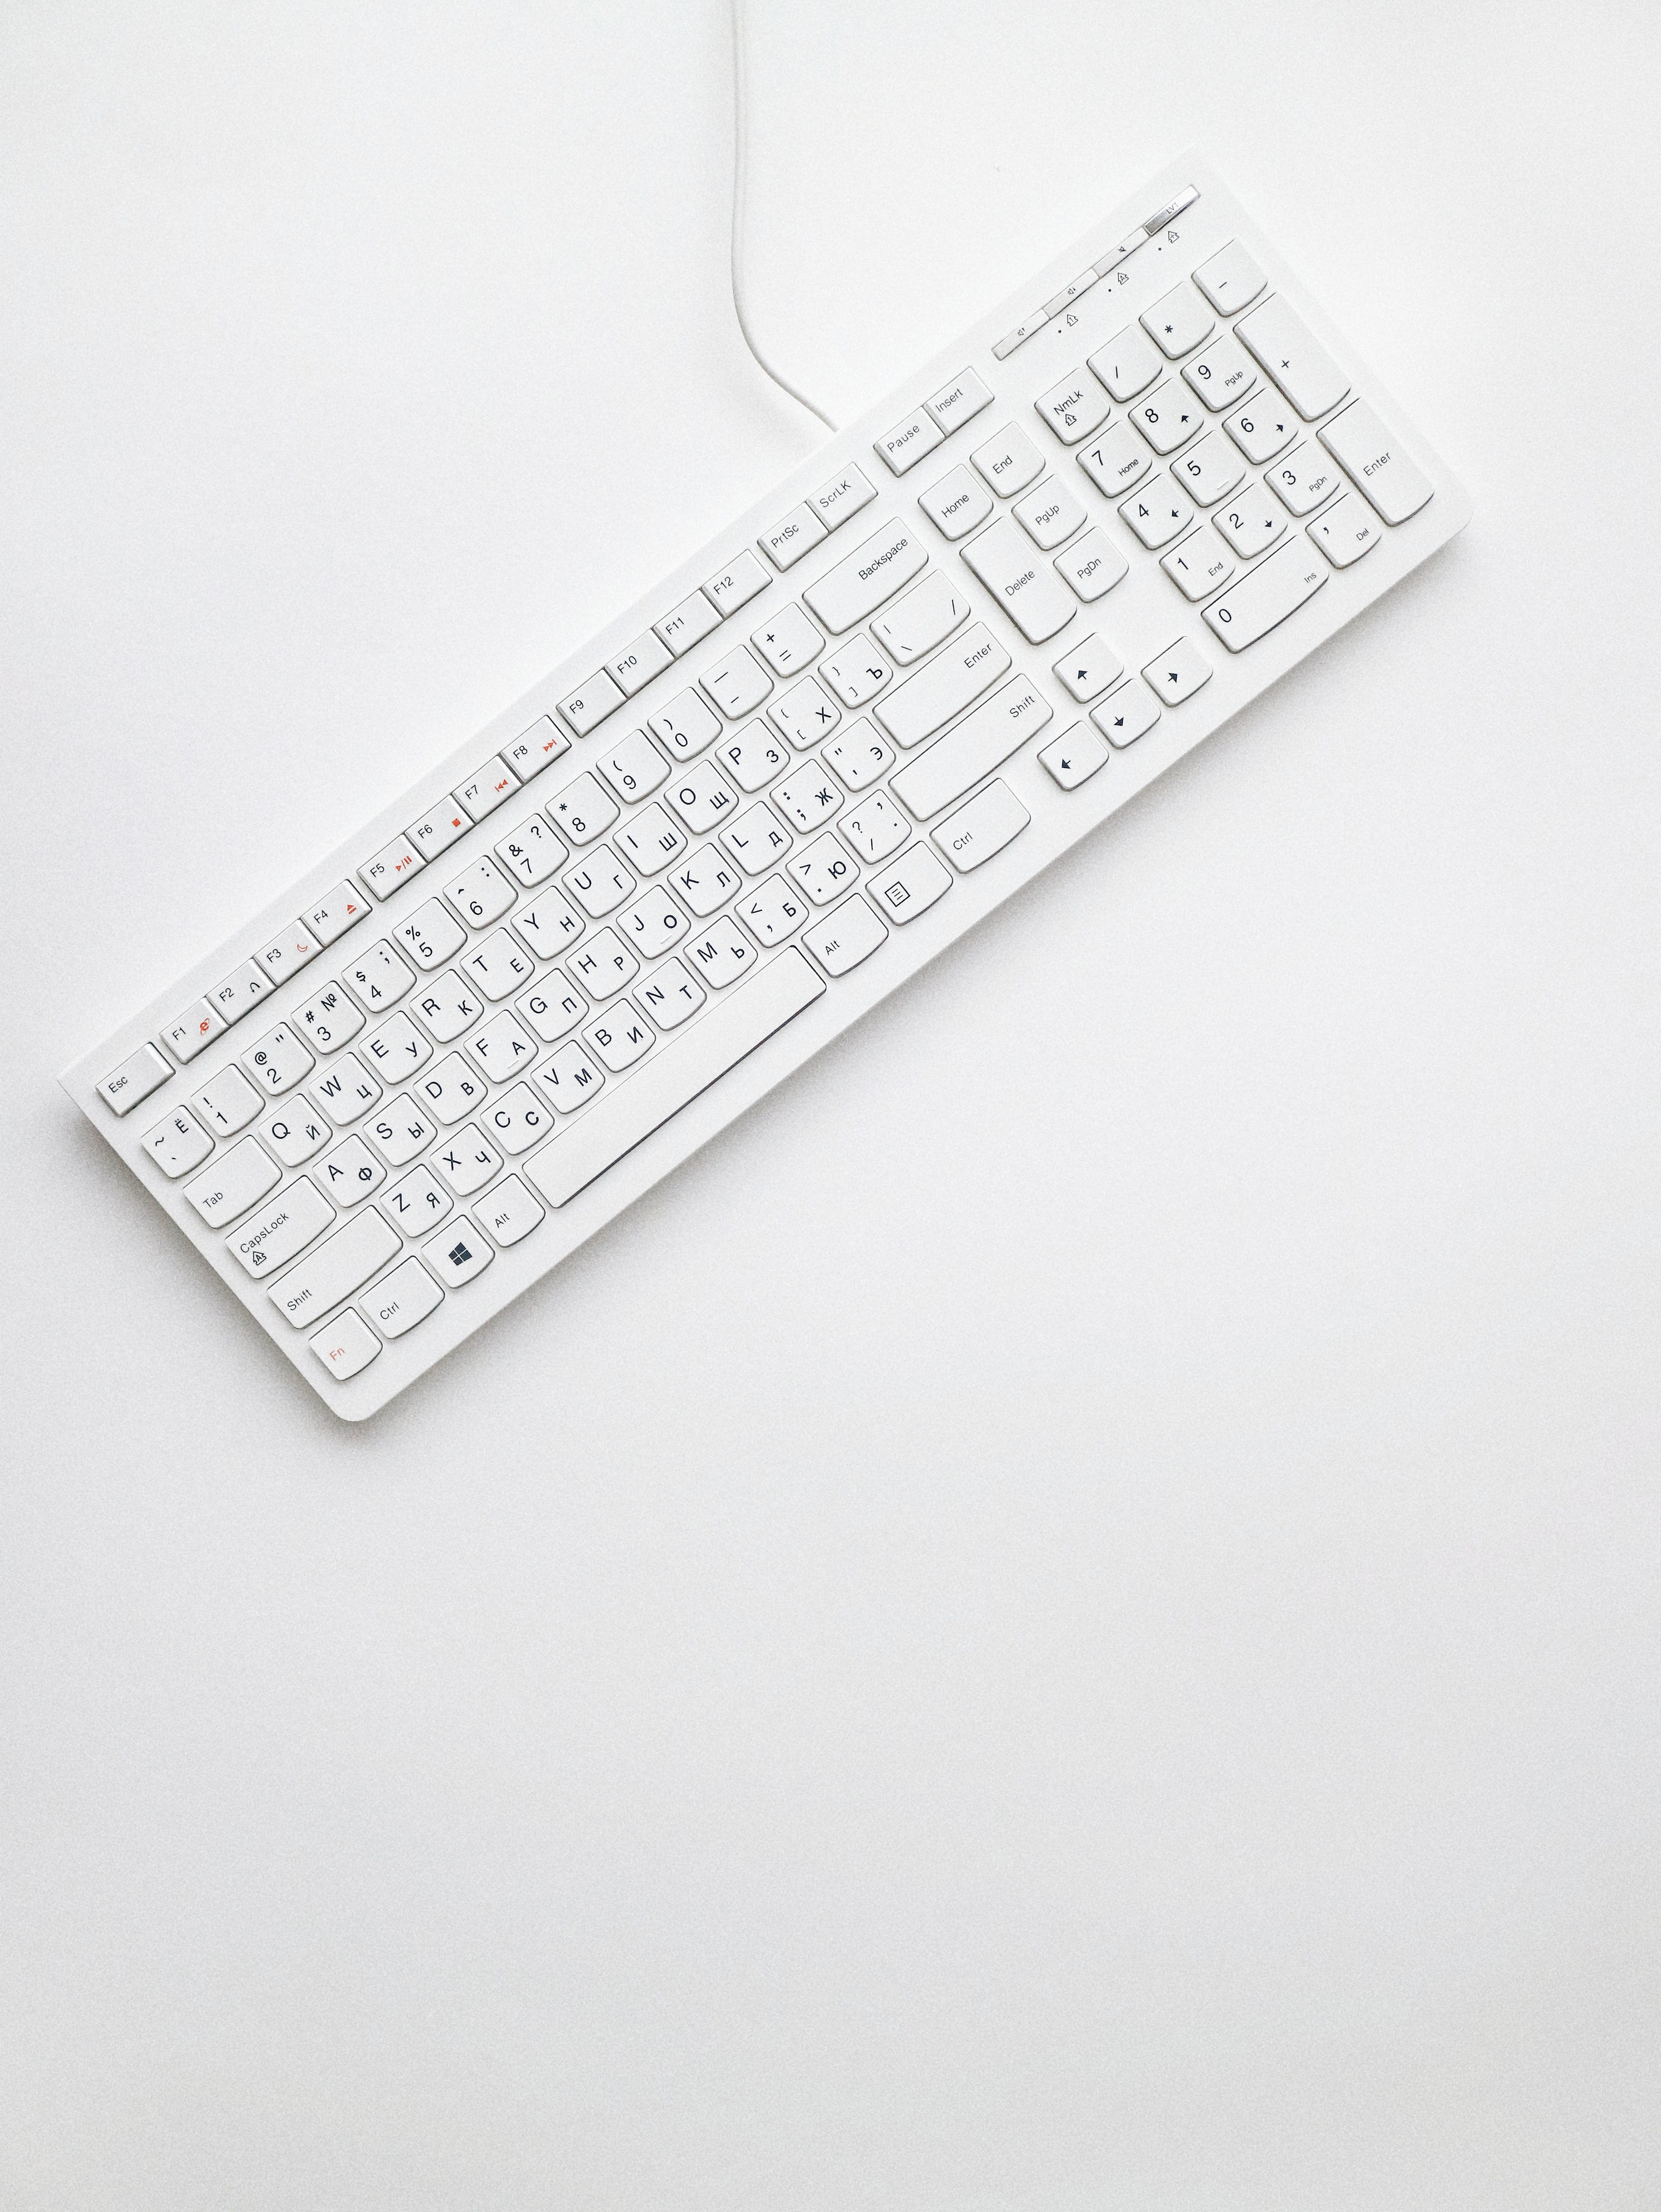 Top View Photo of White Keyboard